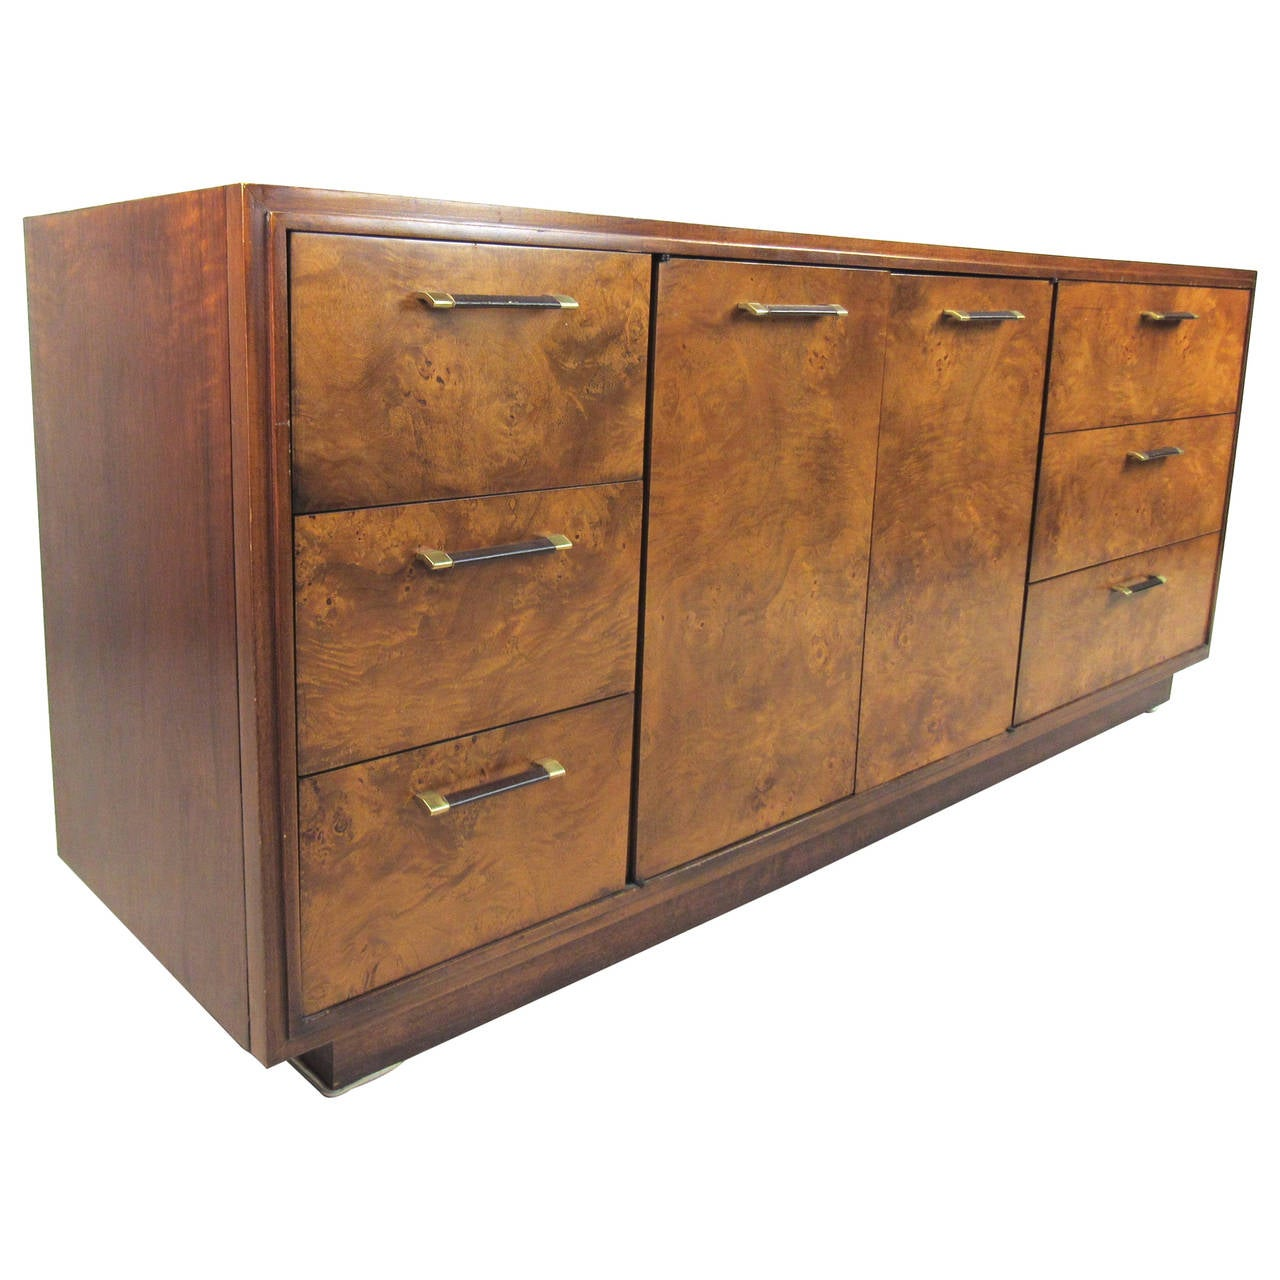 Stylish mid century burlwood bedroom dresser for sale at for Bedroom dressers